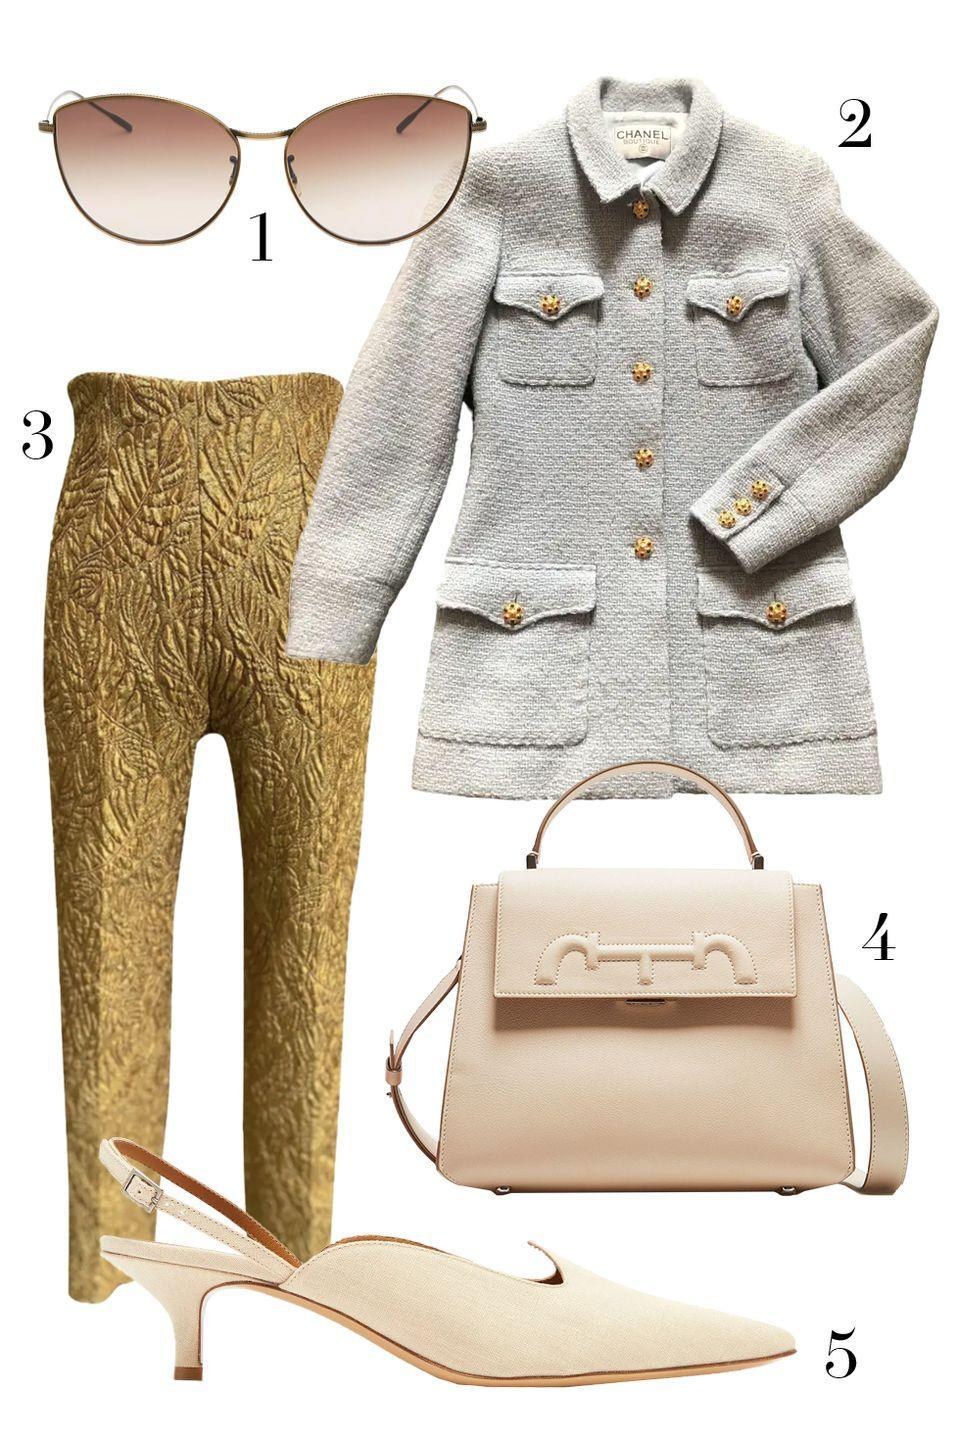 "<p>If you are lucky you will score a stand out piece while scouring vintage sites and stores—like these Dior pants. Surprisingly finding that treasured wardrobe staple—like this Chanel jacket—can be even harder. If you manage to track down both, go with neutral accessories to truly show off your shopping prowess. </p><ol><li><a href=""https://go.skimresources.com?id=74968X1525087&xs=1&url=https%3A%2F%2Fwww.saksfifthavenue.com%2Foliver-peoples-rayette-60mm-cat-eye-sunglasses%2Fproduct%2F0400097144495%3FFOLDER%253C%253Efolder_id%3D2534374306418154%26R%3D827934414365%26P_name%3DOliver%2BPeoples%26N%3D306418154%2B4294929615%2B4294929612%2B4294929608%2B4294929613%26bmUID%3DnddSB7M"" rel=""nofollow noopener"" target=""_blank"" data-ylk=""slk:Oliver Peoples"" class=""link rapid-noclick-resp"">Oliver Peoples</a> 2. <a href=""https://go.skimresources.com?id=74968X1525087&xs=1&url=https%3A%2F%2Fus.vestiairecollective.com%2Fwomen-clothing%2Fjackets%2Fchanel%2Fblue-wool-chanel-jacket-10831892.shtml"" rel=""nofollow noopener"" target=""_blank"" data-ylk=""slk:Chanel via Vestaire Collective"" class=""link rapid-noclick-resp"">Chanel via Vestaire Collective </a>3. <a href=""https://us.vestiairecollective.com/women-clothing/trousers/dior/"" rel=""nofollow noopener"" target=""_blank"" data-ylk=""slk:Christian Dior via Vestair Collective"" class=""link rapid-noclick-resp"">Christian Dior via Vestair Collective</a> 4. <a href=""https://go.skimresources.com?id=74968X1525087&xs=1&url=https%3A%2F%2Fchcarolinaherrera.com%2Fgb%2Fen%2Fwomen%2Fbags%2Fhandbags%2Fitem%2Fdoma-insignia-satchel-medium-shoulder-bag-magnolia"" rel=""nofollow noopener"" target=""_blank"" data-ylk=""slk:CH Carolina Herrera"" class=""link rapid-noclick-resp"">CH Carolina Herrera</a> 5. <a href=""https://go.skimresources.com?id=74968X1525087&xs=1&url=https%3A%2F%2Fwww.matchesfashion.com%2Fus%2Fproducts%2FLe-Monde-Beryl-Point-toe-linen-slingback-pumps-1350228"" rel=""nofollow noopener"" target=""_blank"" data-ylk=""slk:Le Monde Beryl"" class=""link rapid-noclick-resp"">Le Monde Beryl</a></li></ol>"